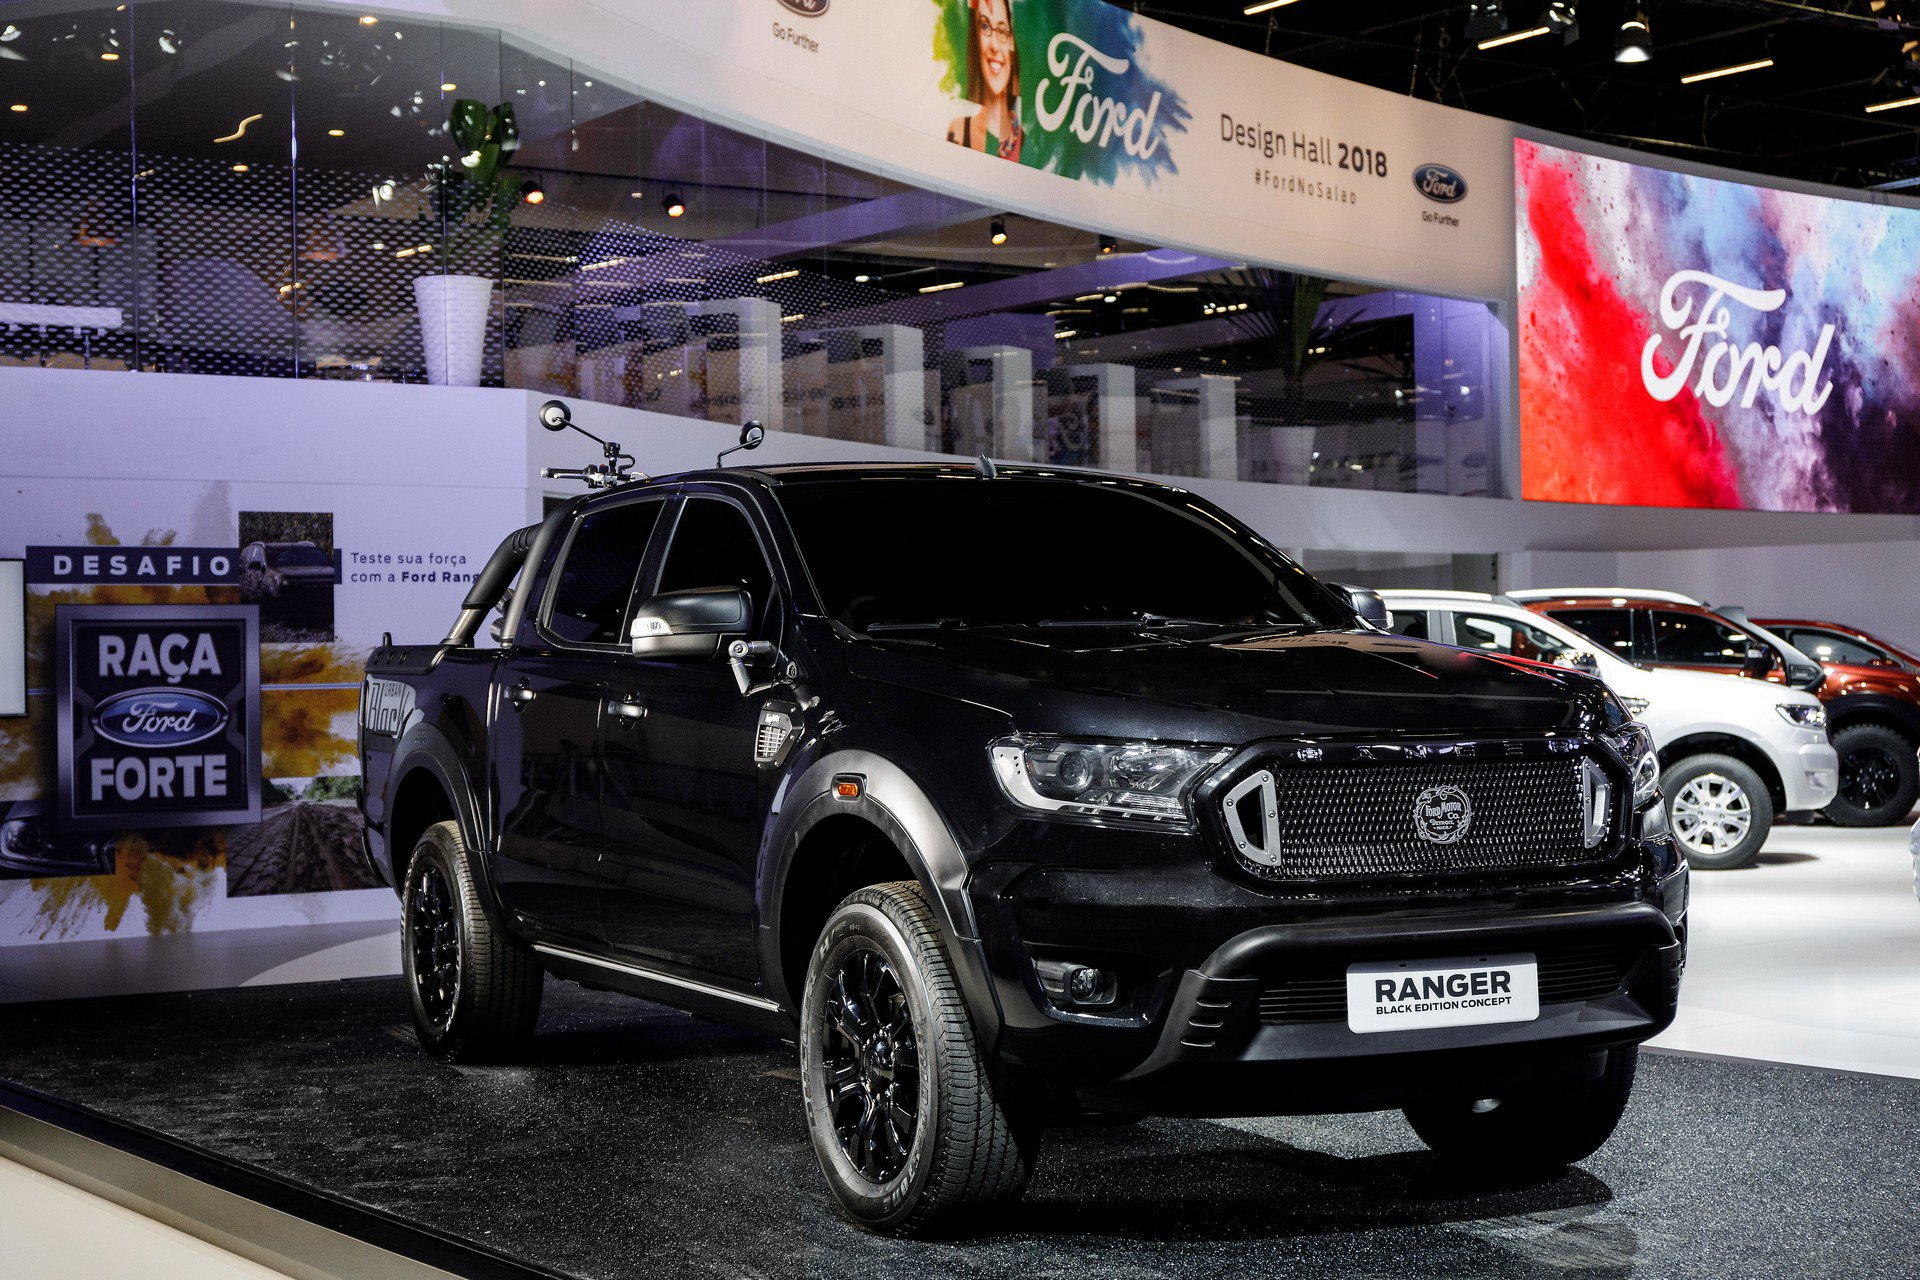 Ford Ranger Storm Concept and Ka Urban Warrior Concept (4)